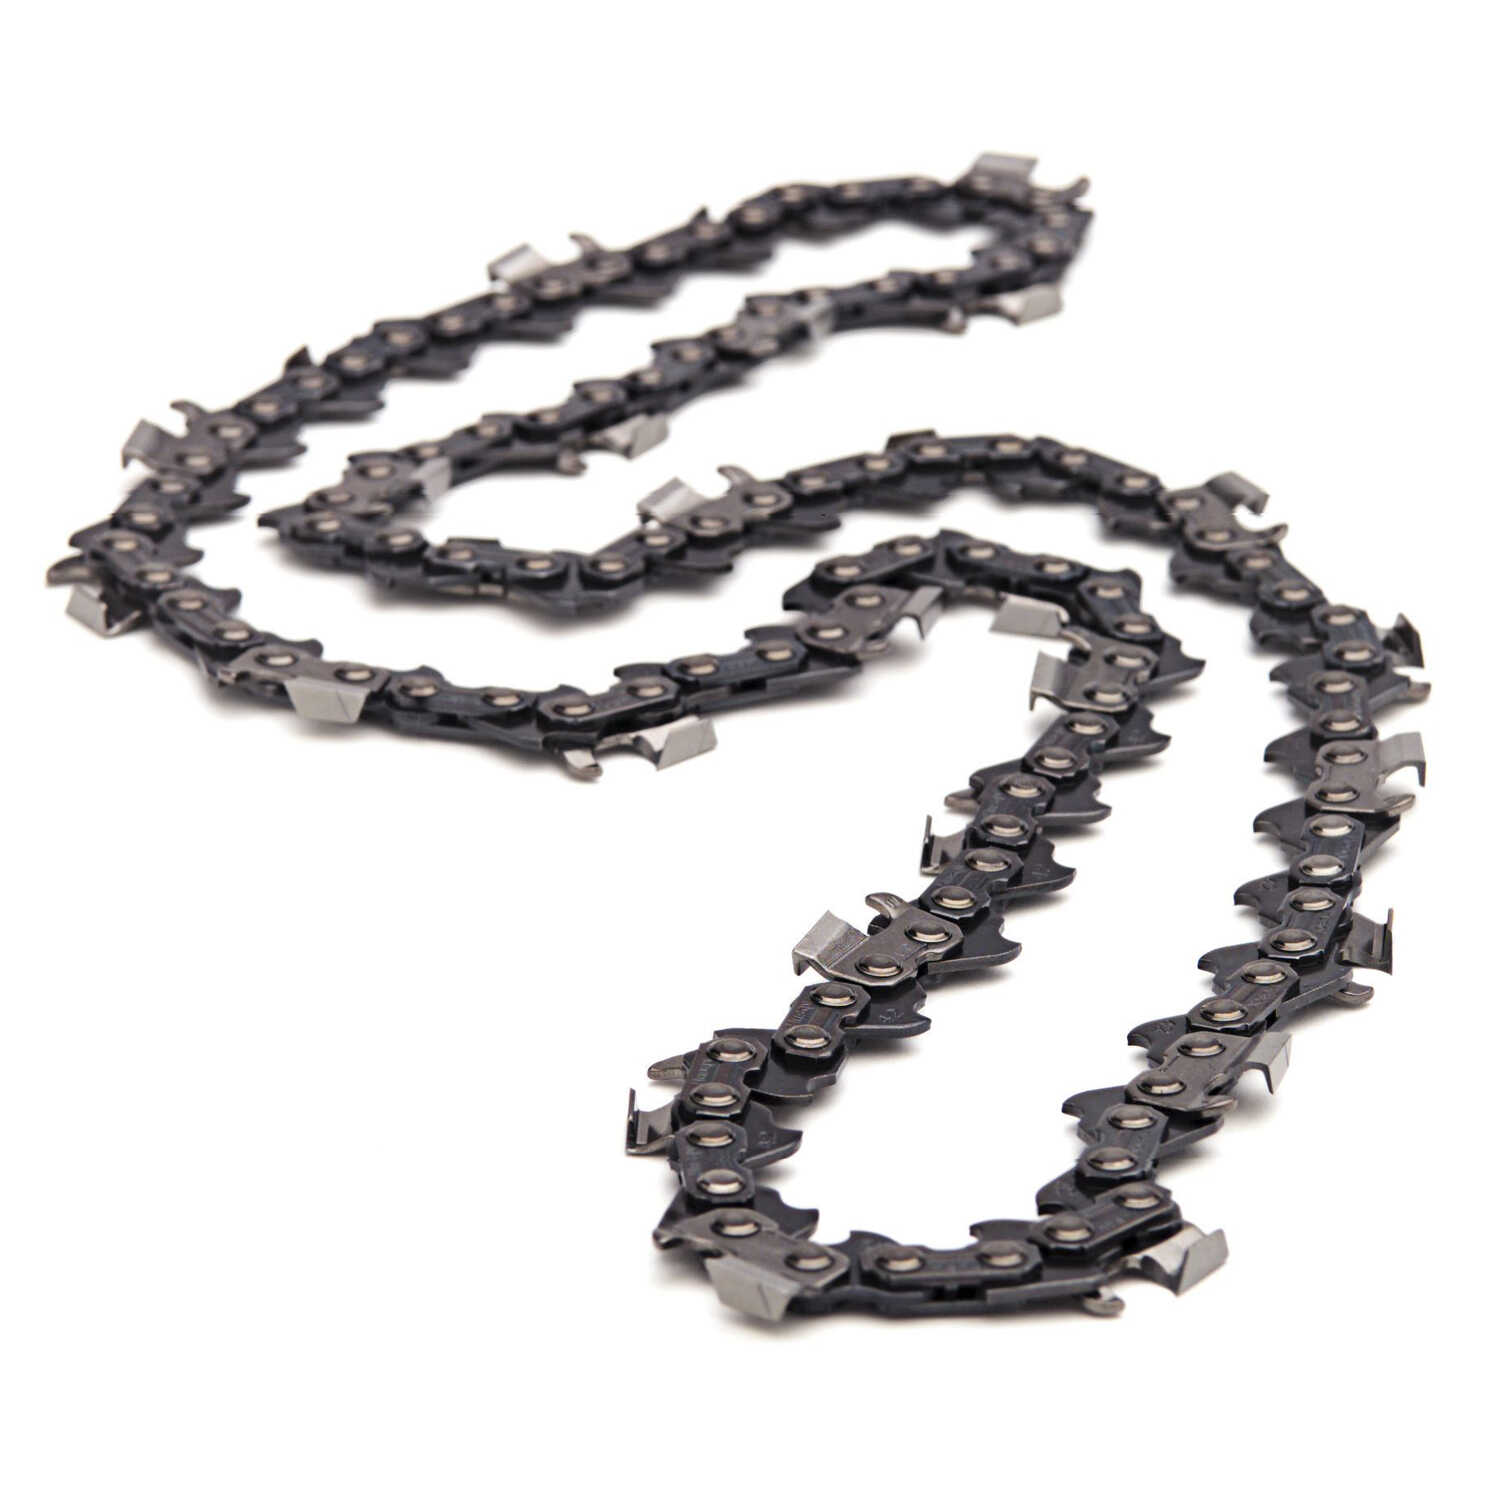 Husqvarna  20 in. 80 links Replacement Chainsaw Chain